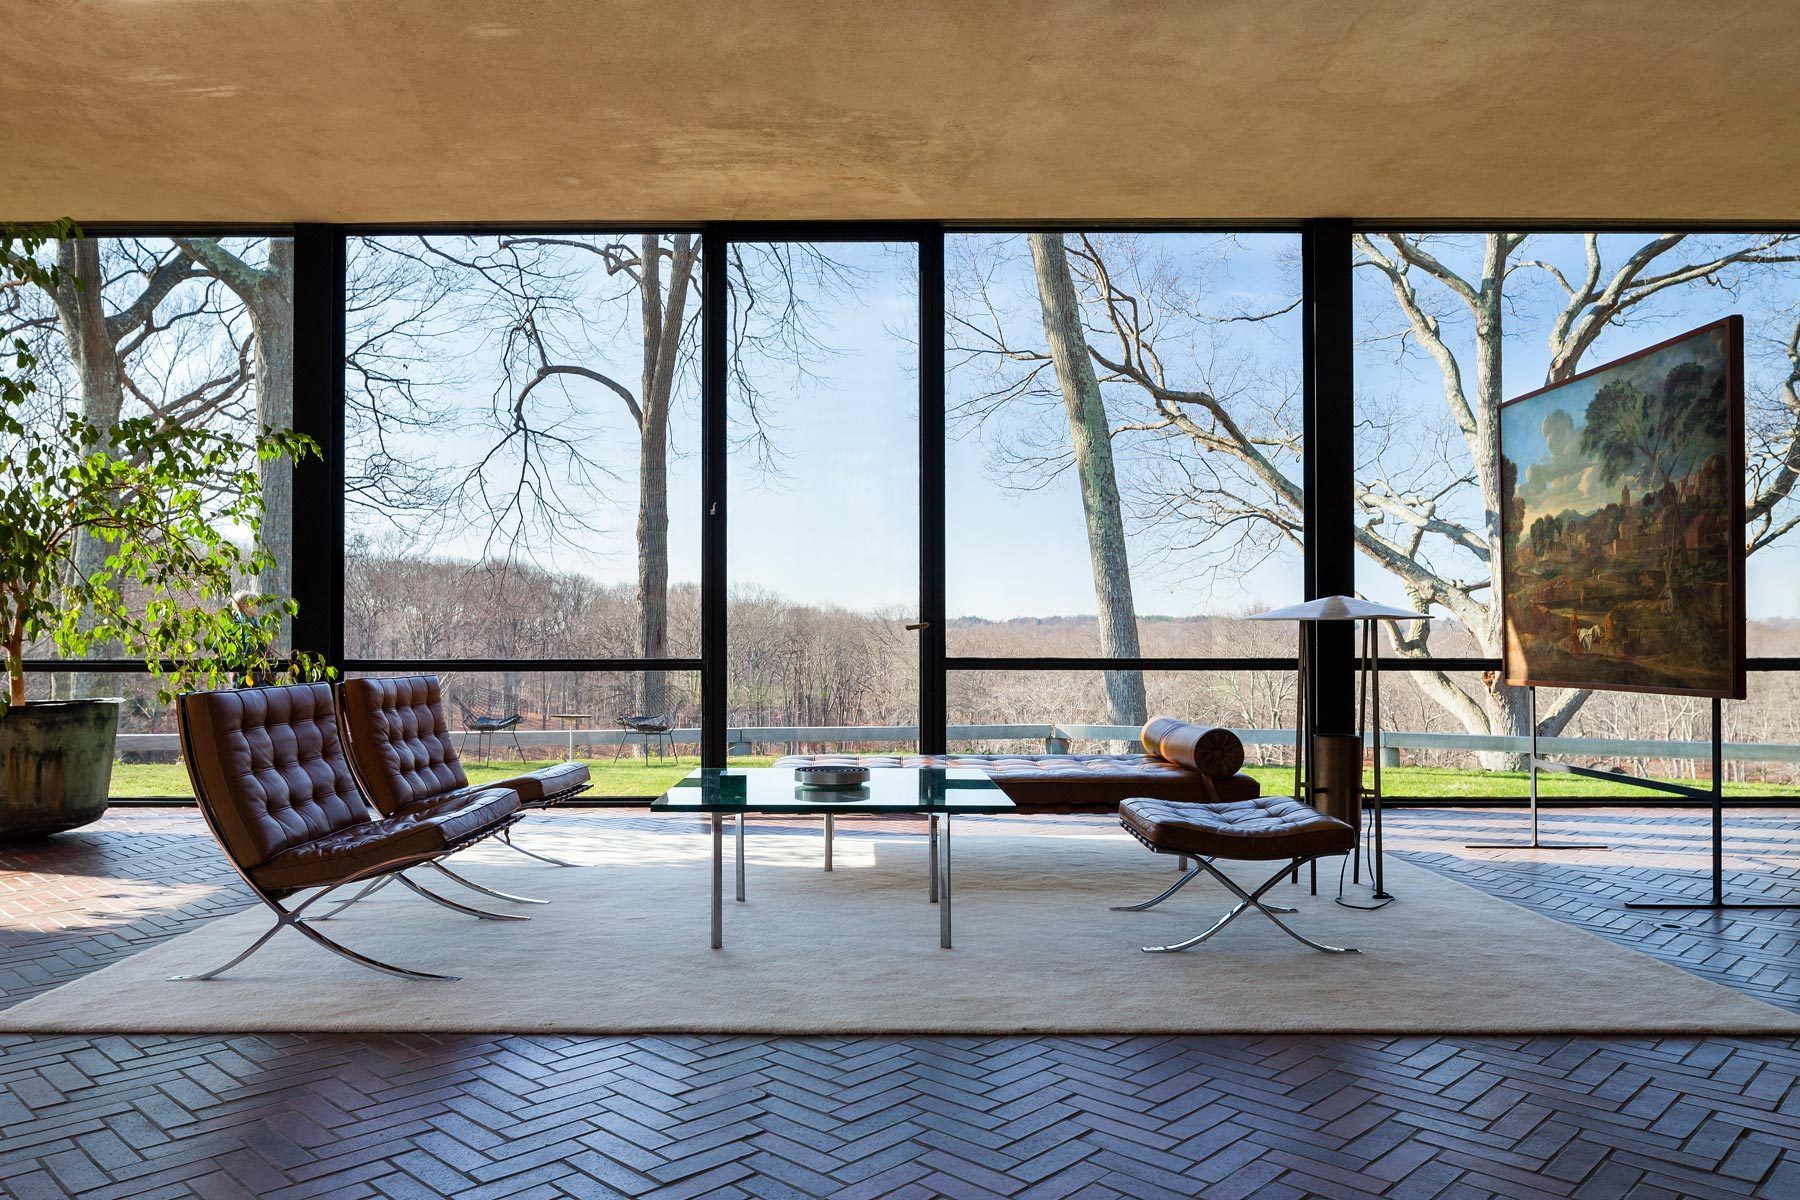 Philip Johnson's Glass House interior – New Canaan, Connecticut